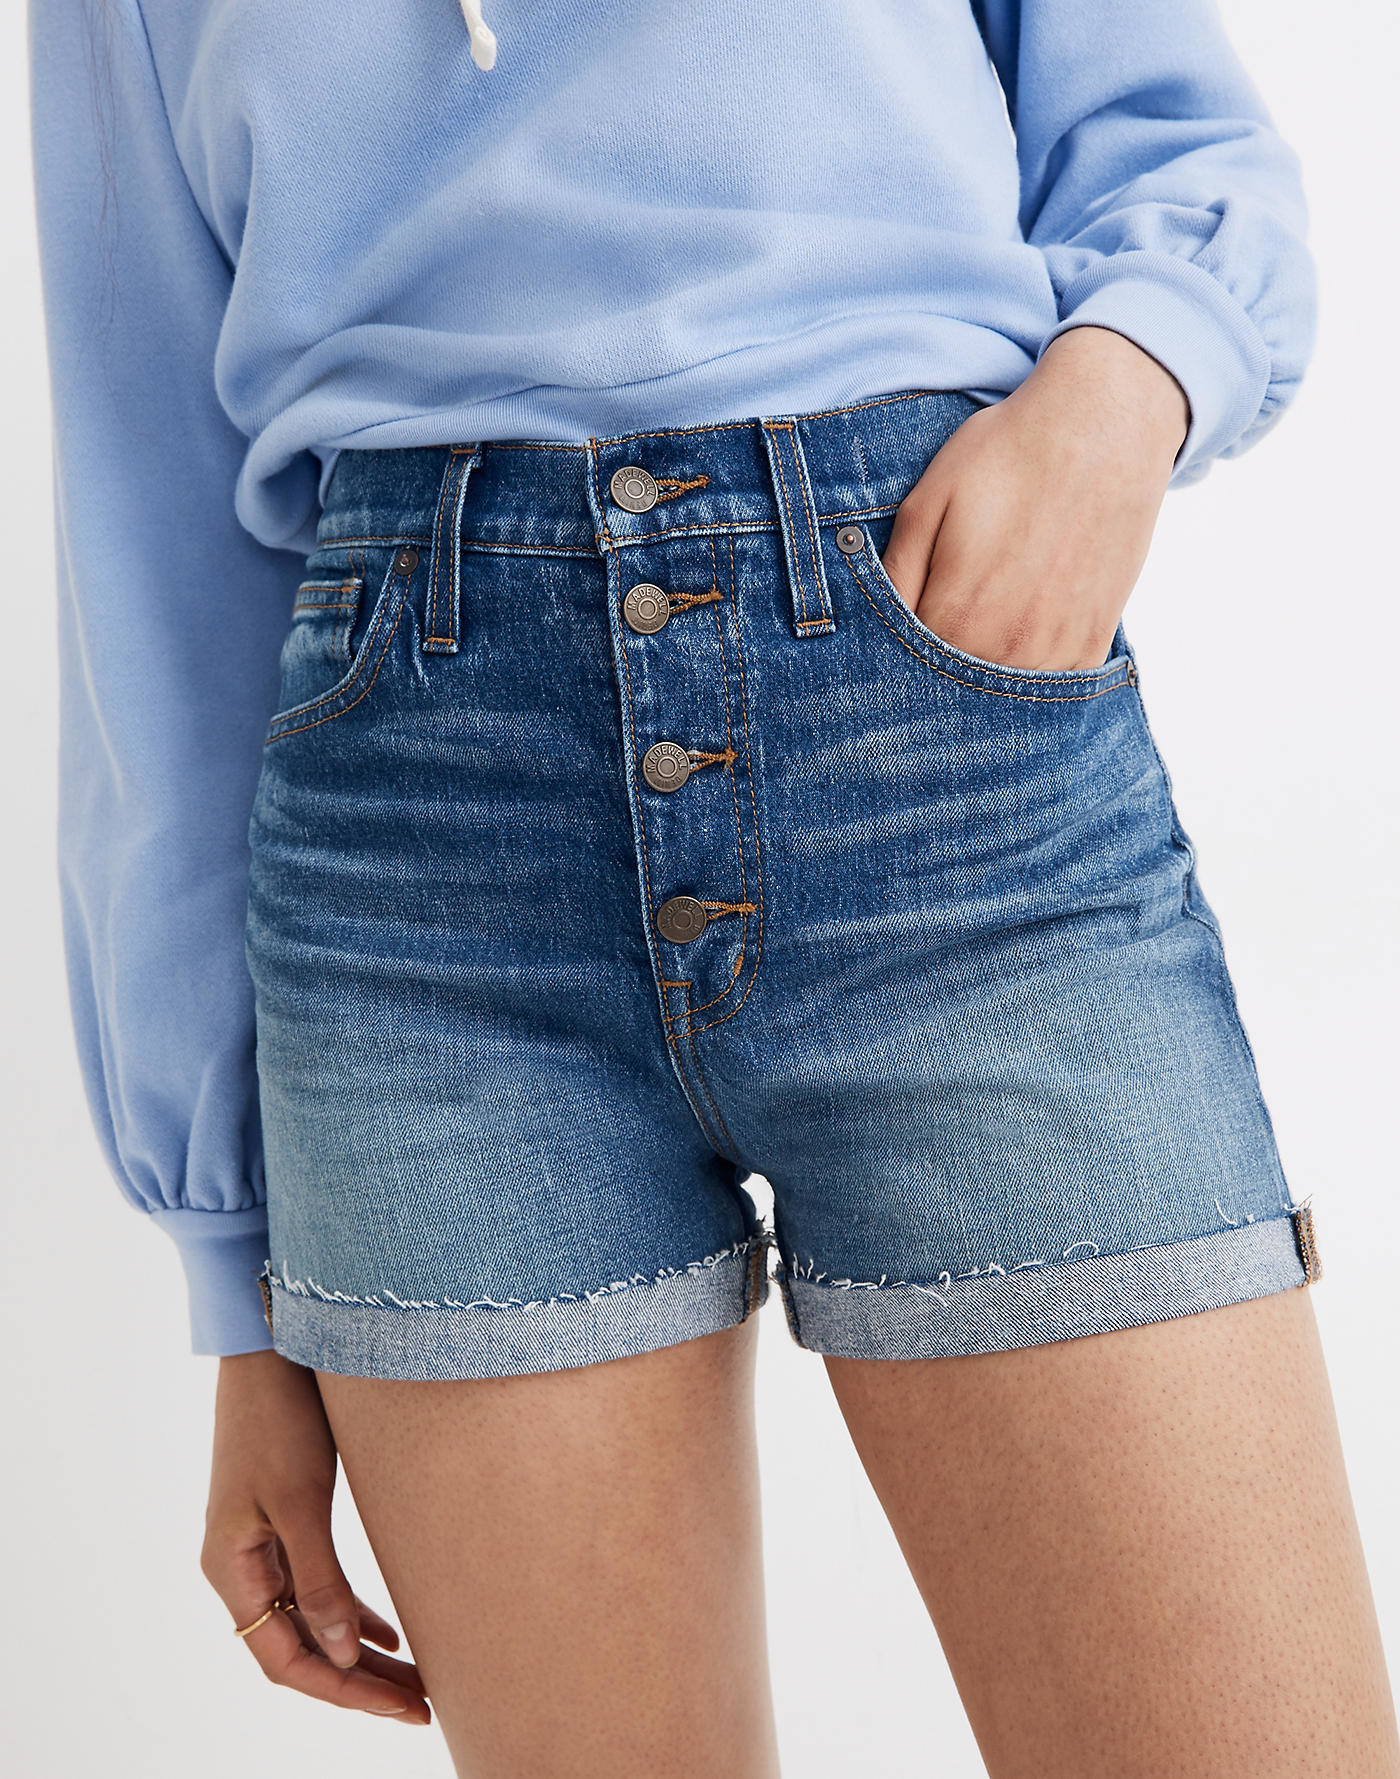 model wearing blue denim shorts with a four button closure